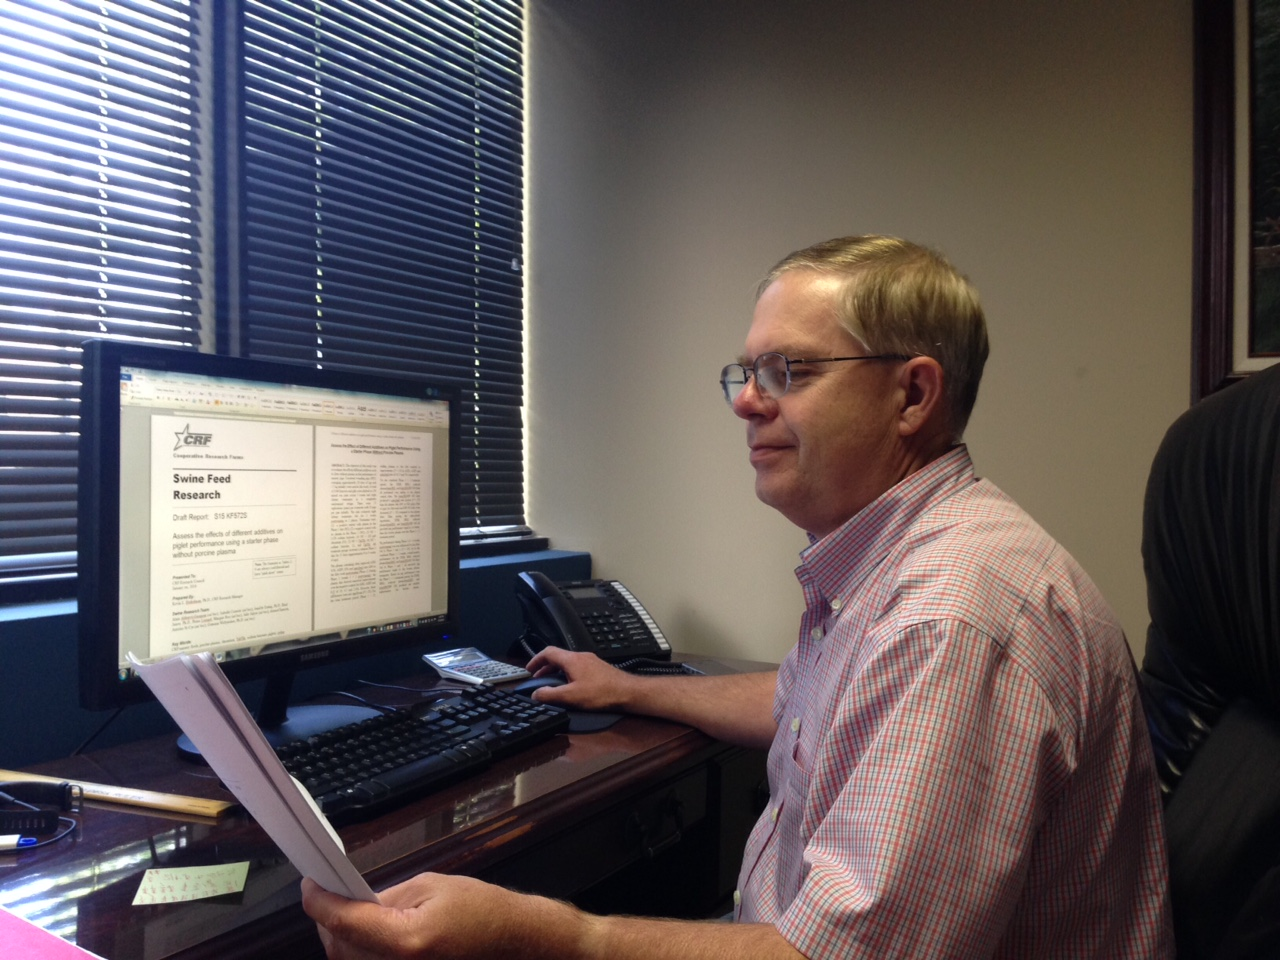 Dr. Kevin Herkelman - CRF Swine Research Manager